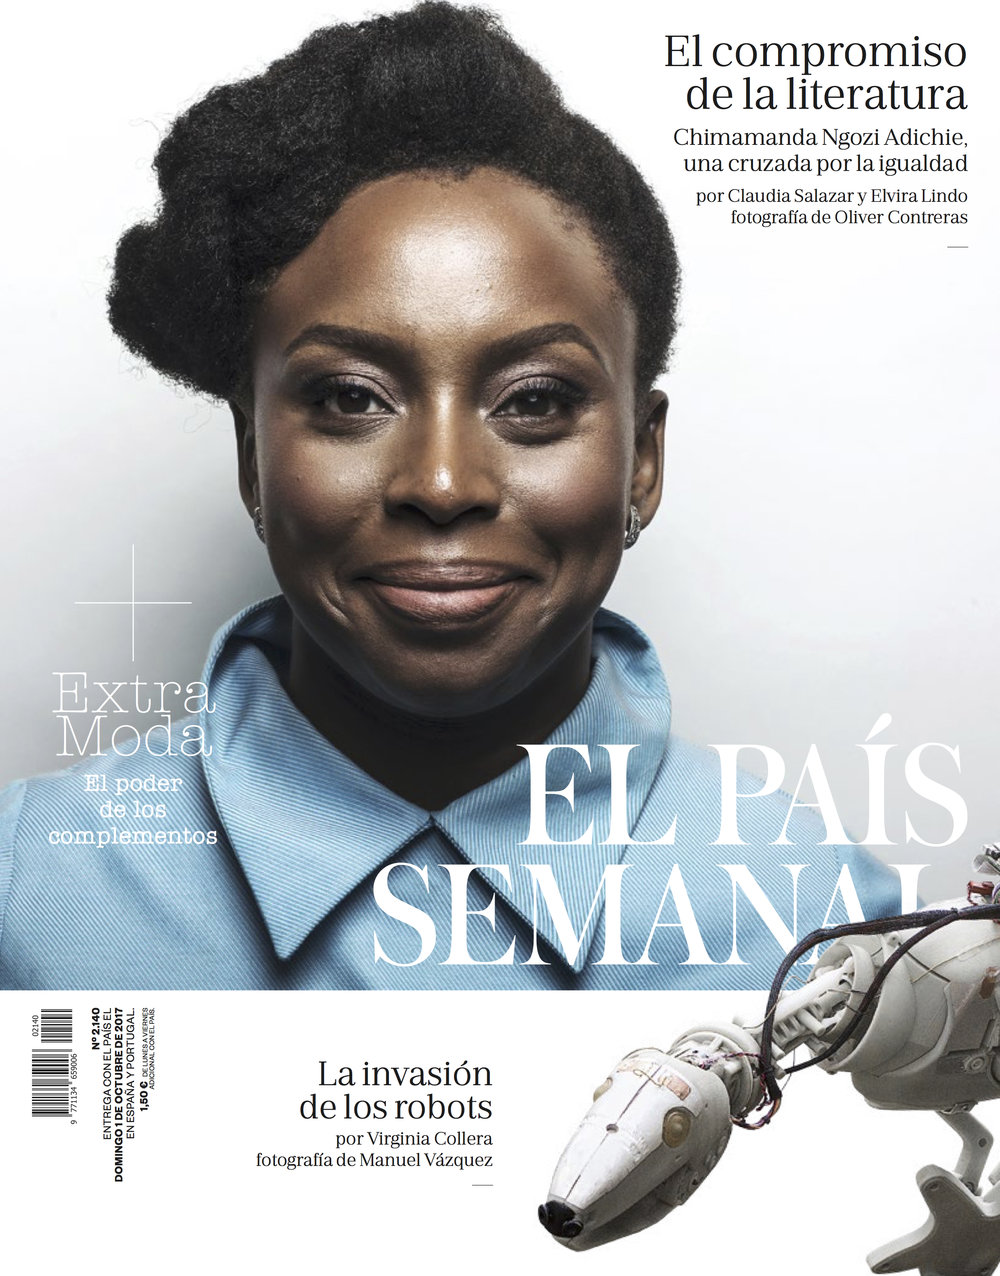 Chimamanda_Cover_epS_20171001.jpg